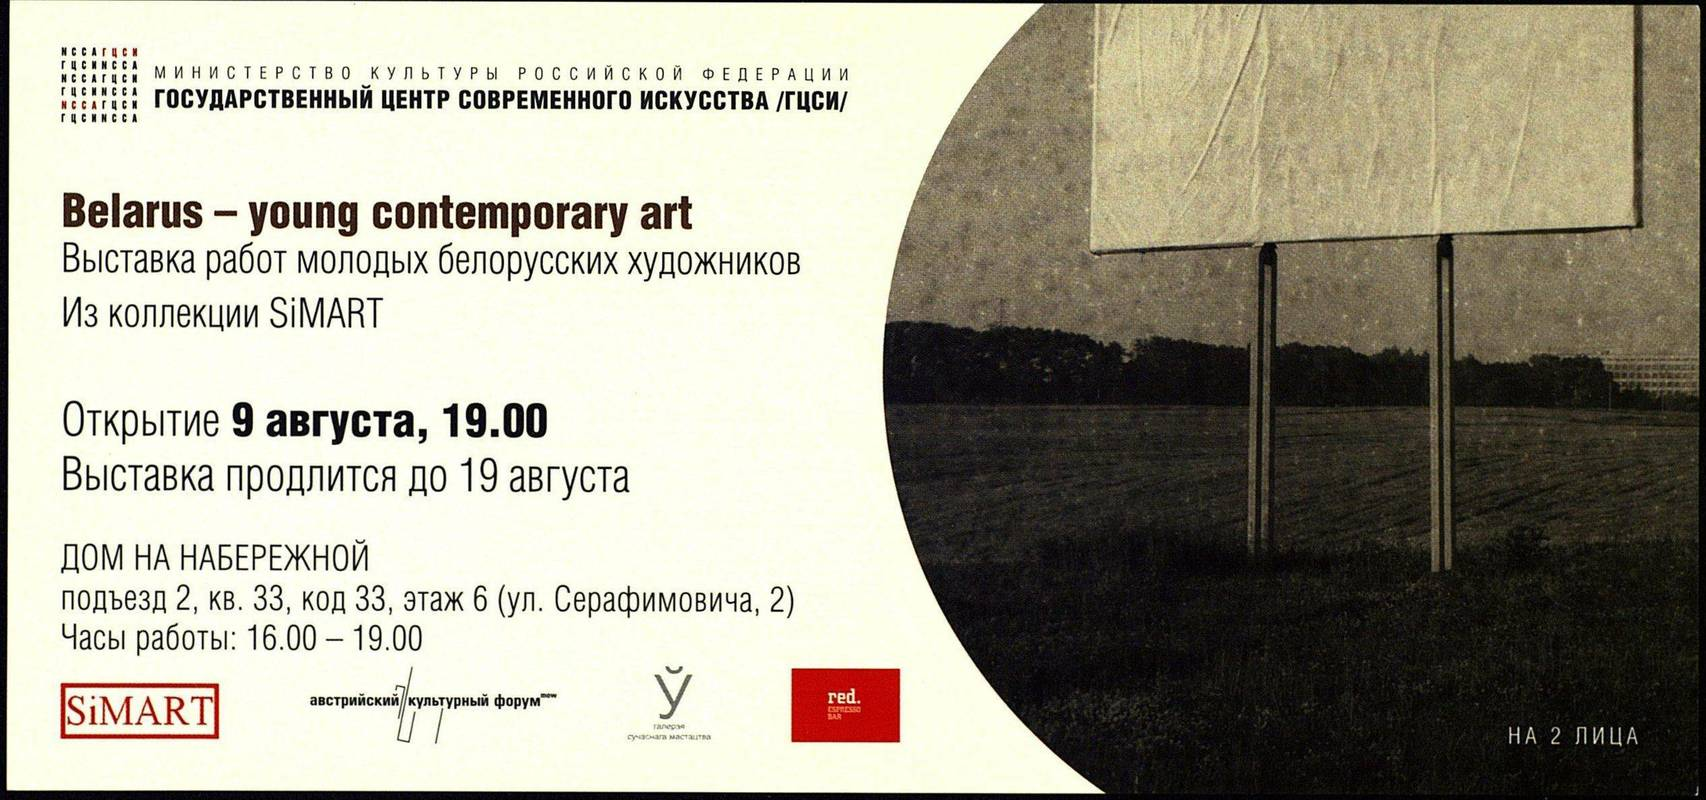 Belarus— young contemporary art